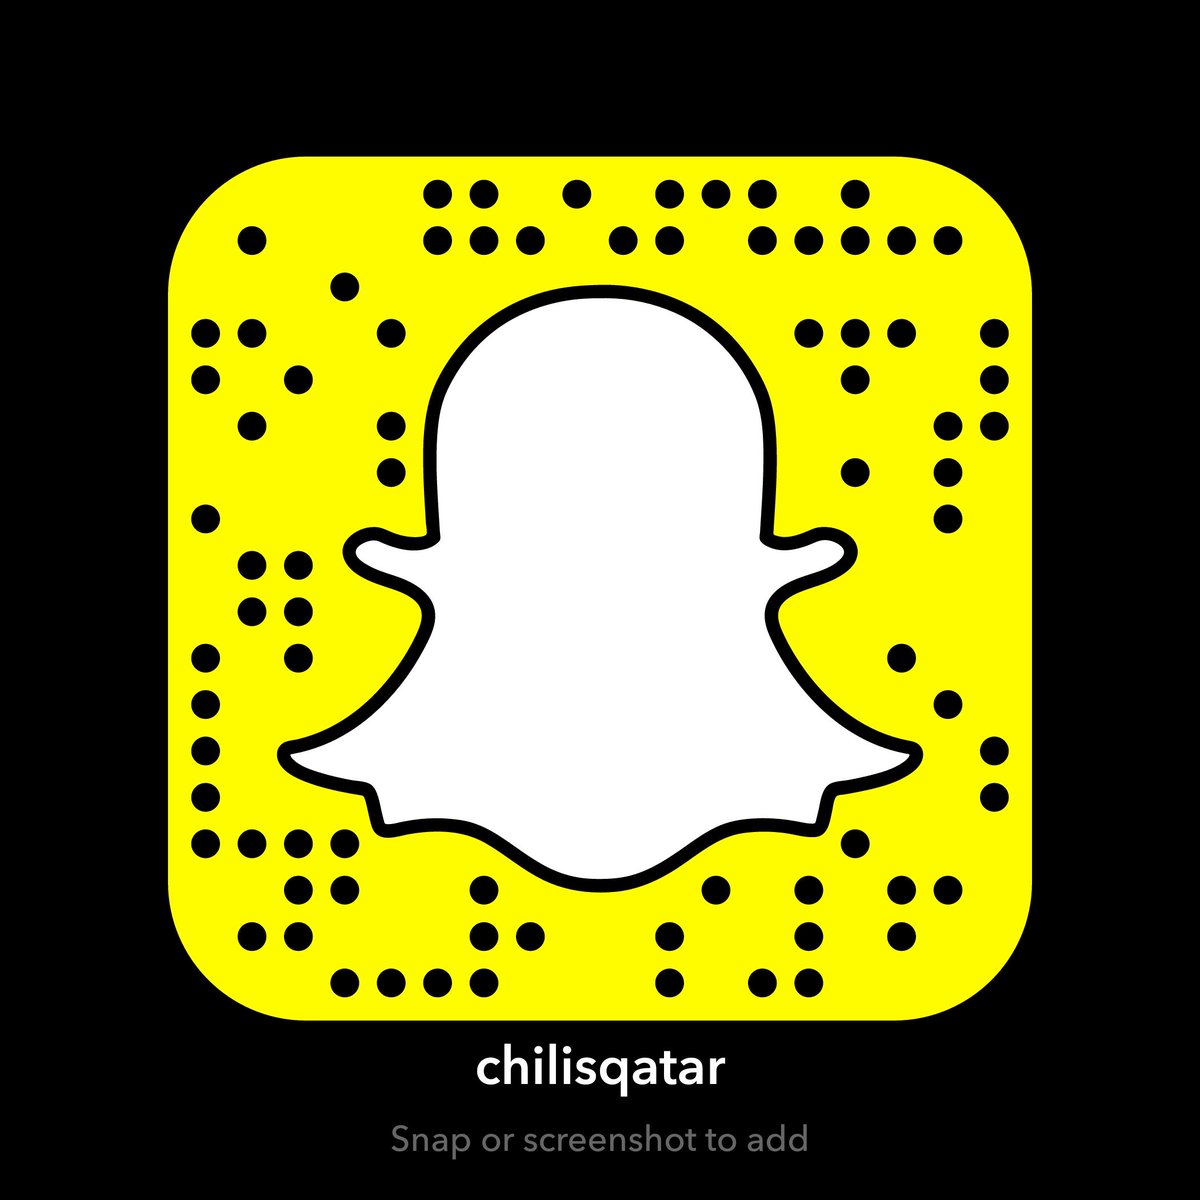 Chilis qatar on twitter hello everyone add us on snapchat to add us on snapchat to stay updated with the latest news promos offers and surprise from chilis qatar chiisqatar httpst73c0uc6g4z thecheapjerseys Gallery